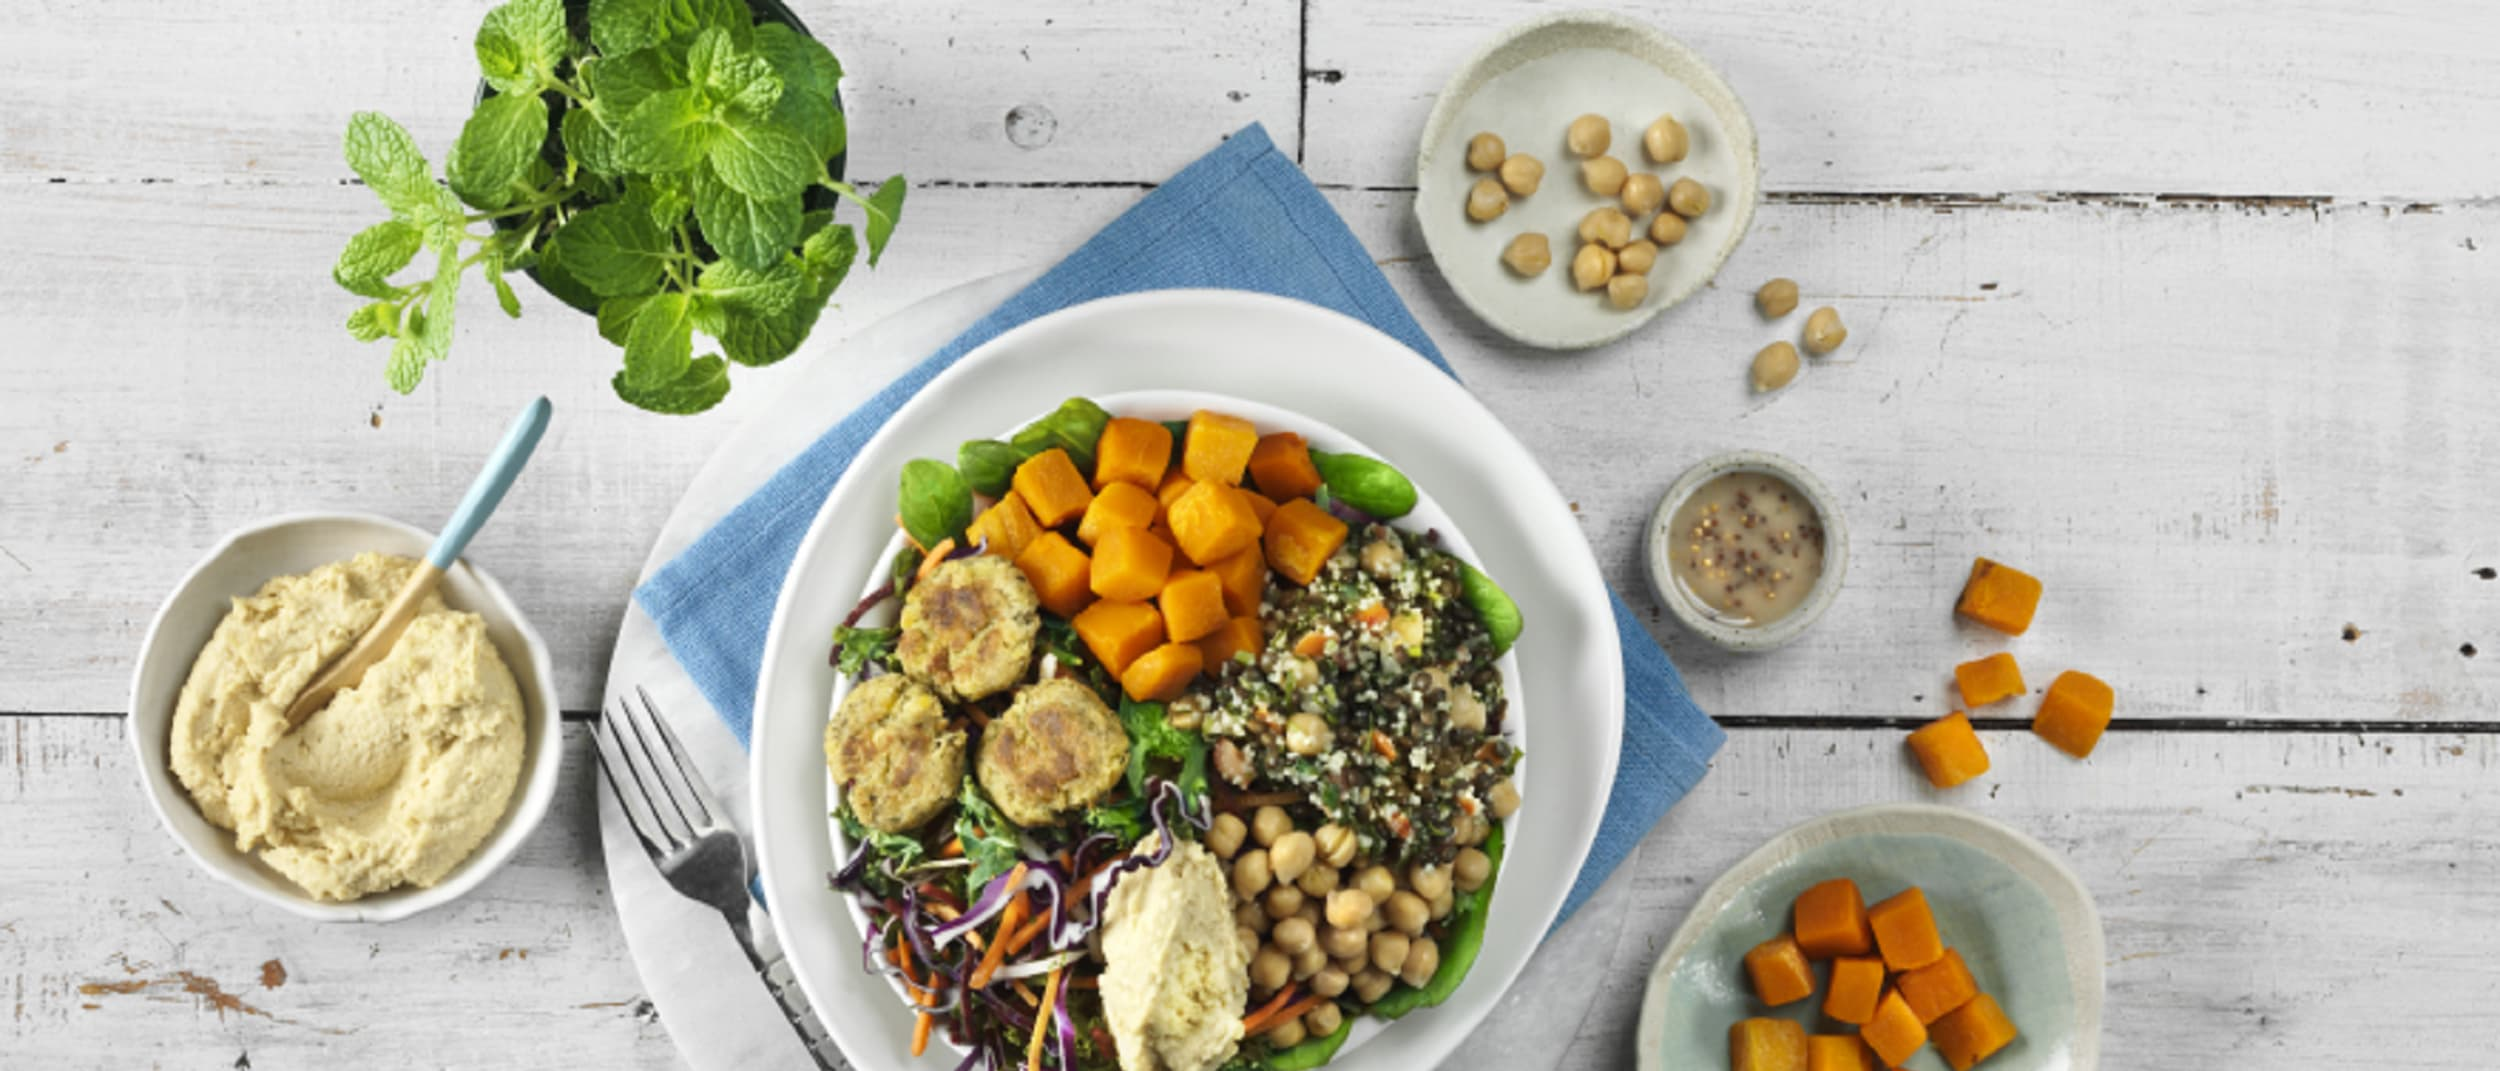 Introducing delicious plant-based options at SumoSalad